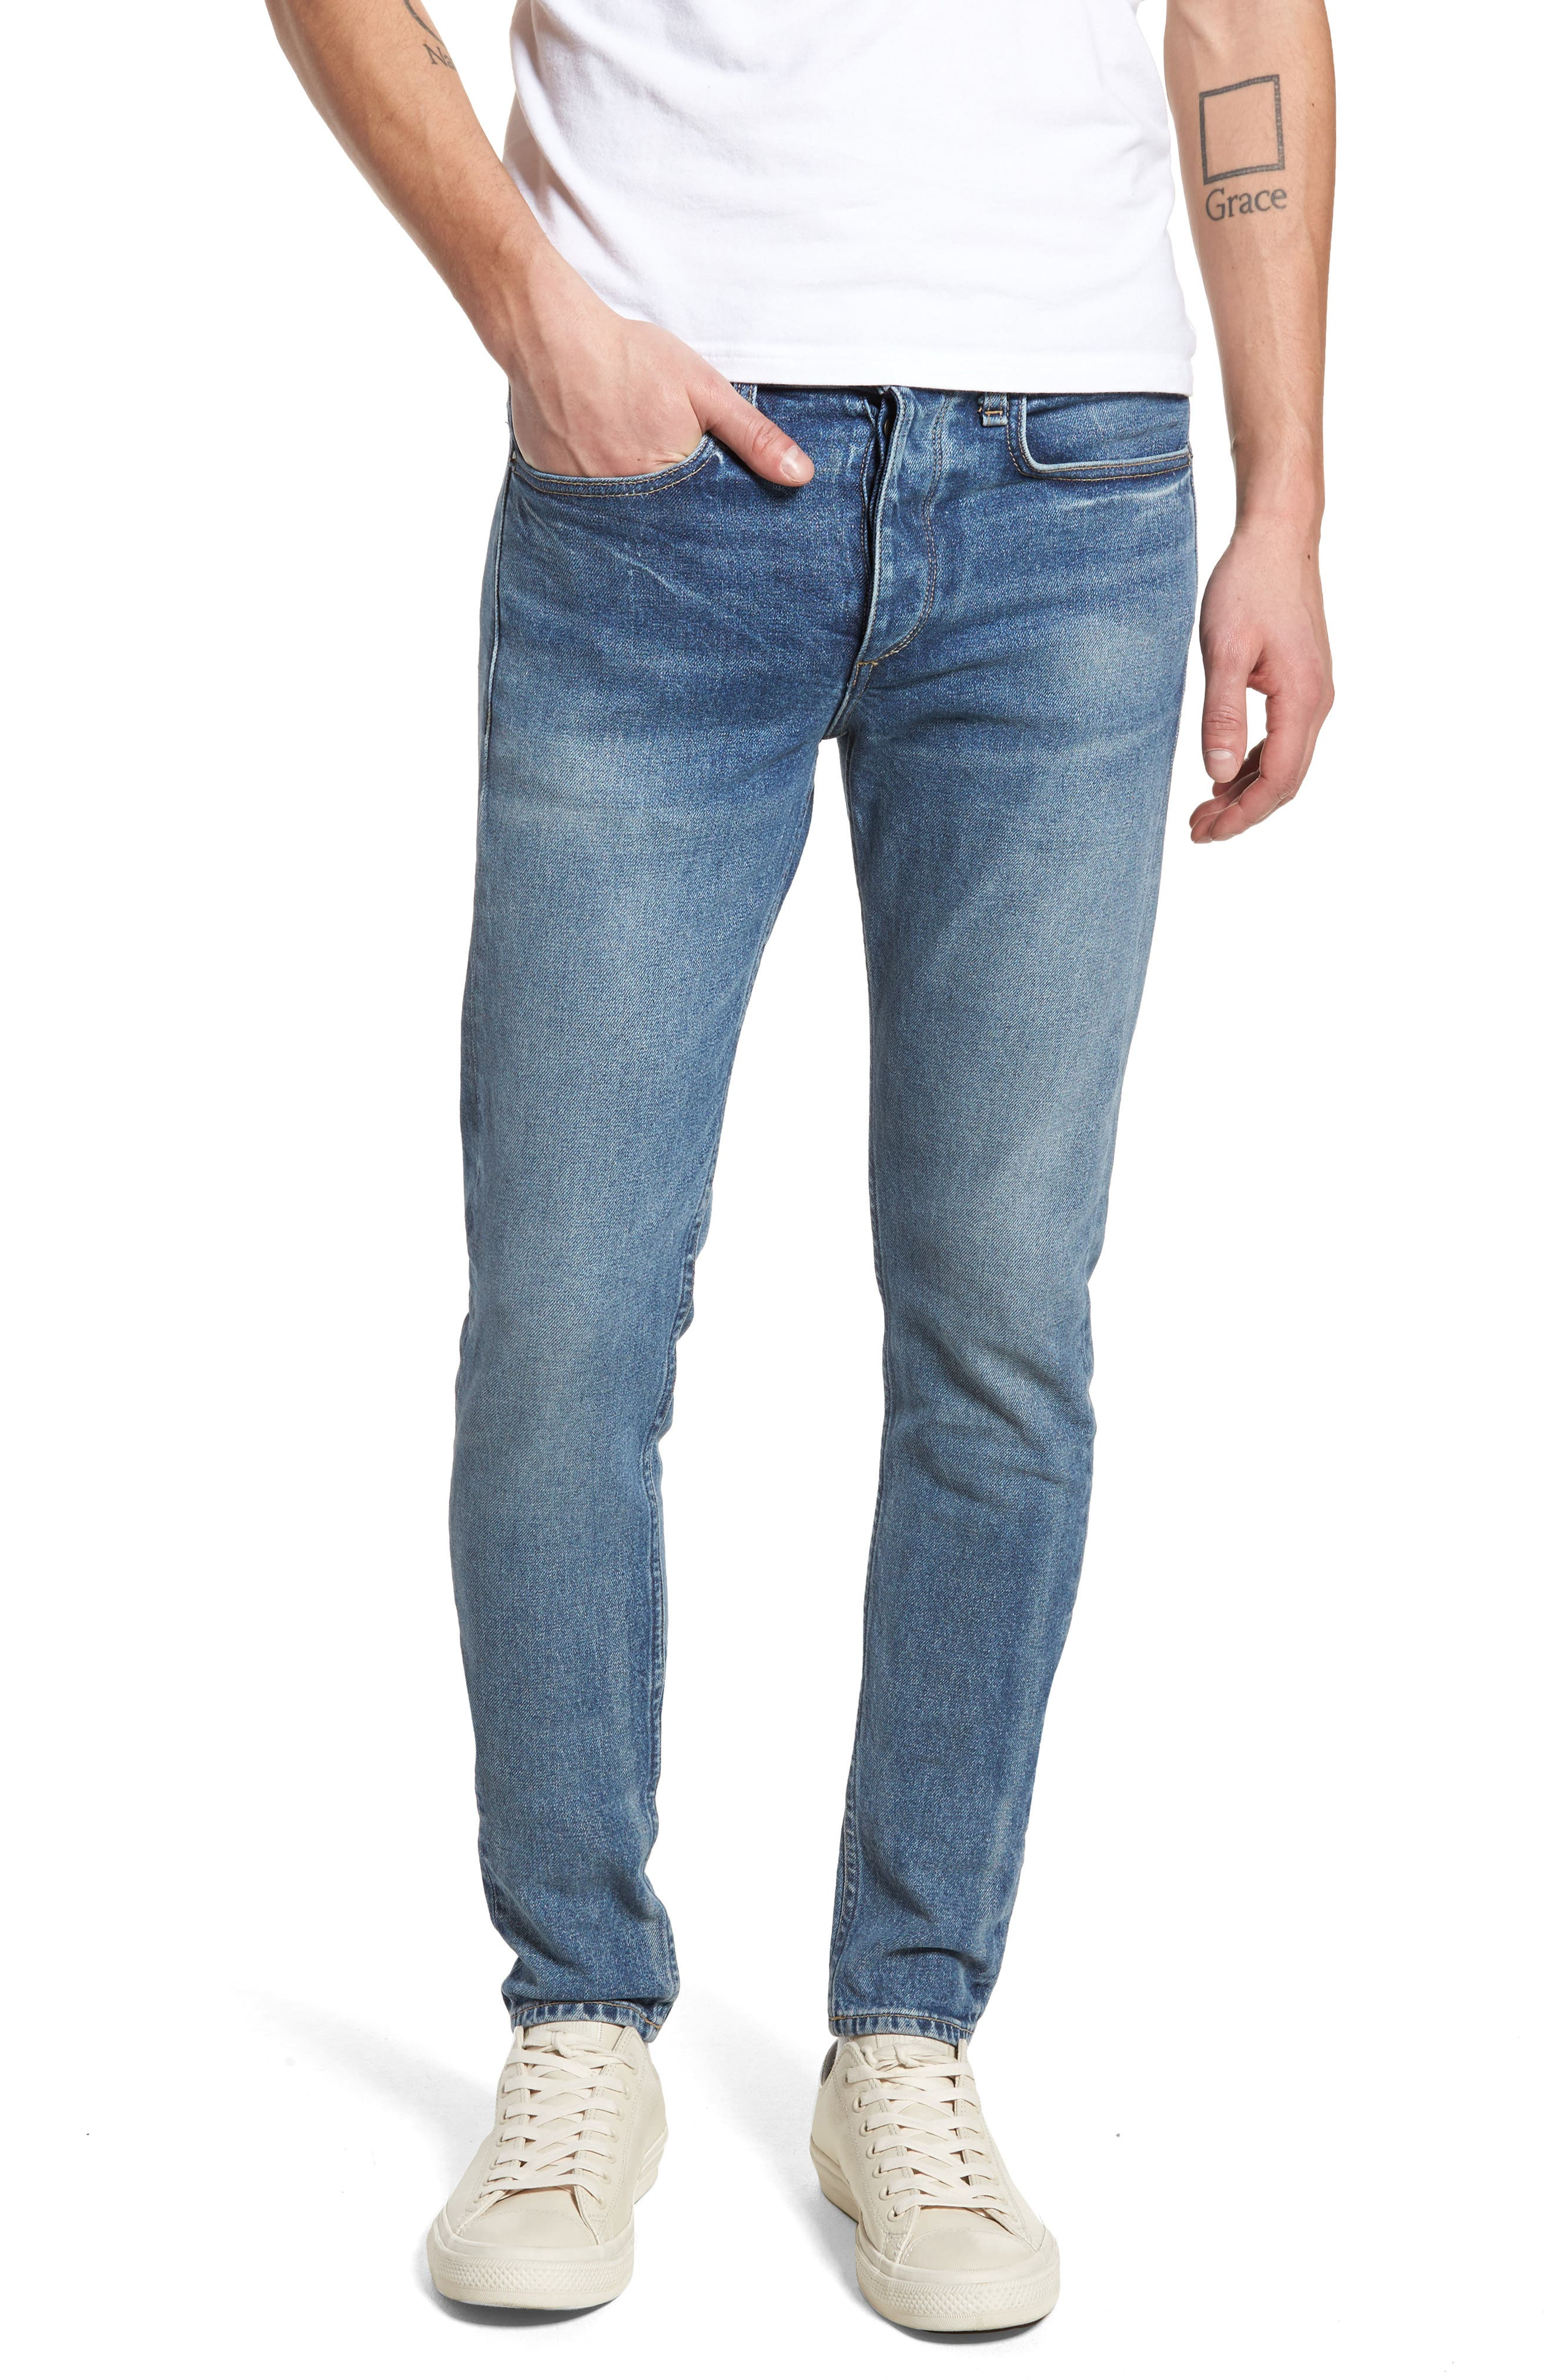 Fit 1 Skinny Fit Jeans,                         Main,                         color, BRIGHTON